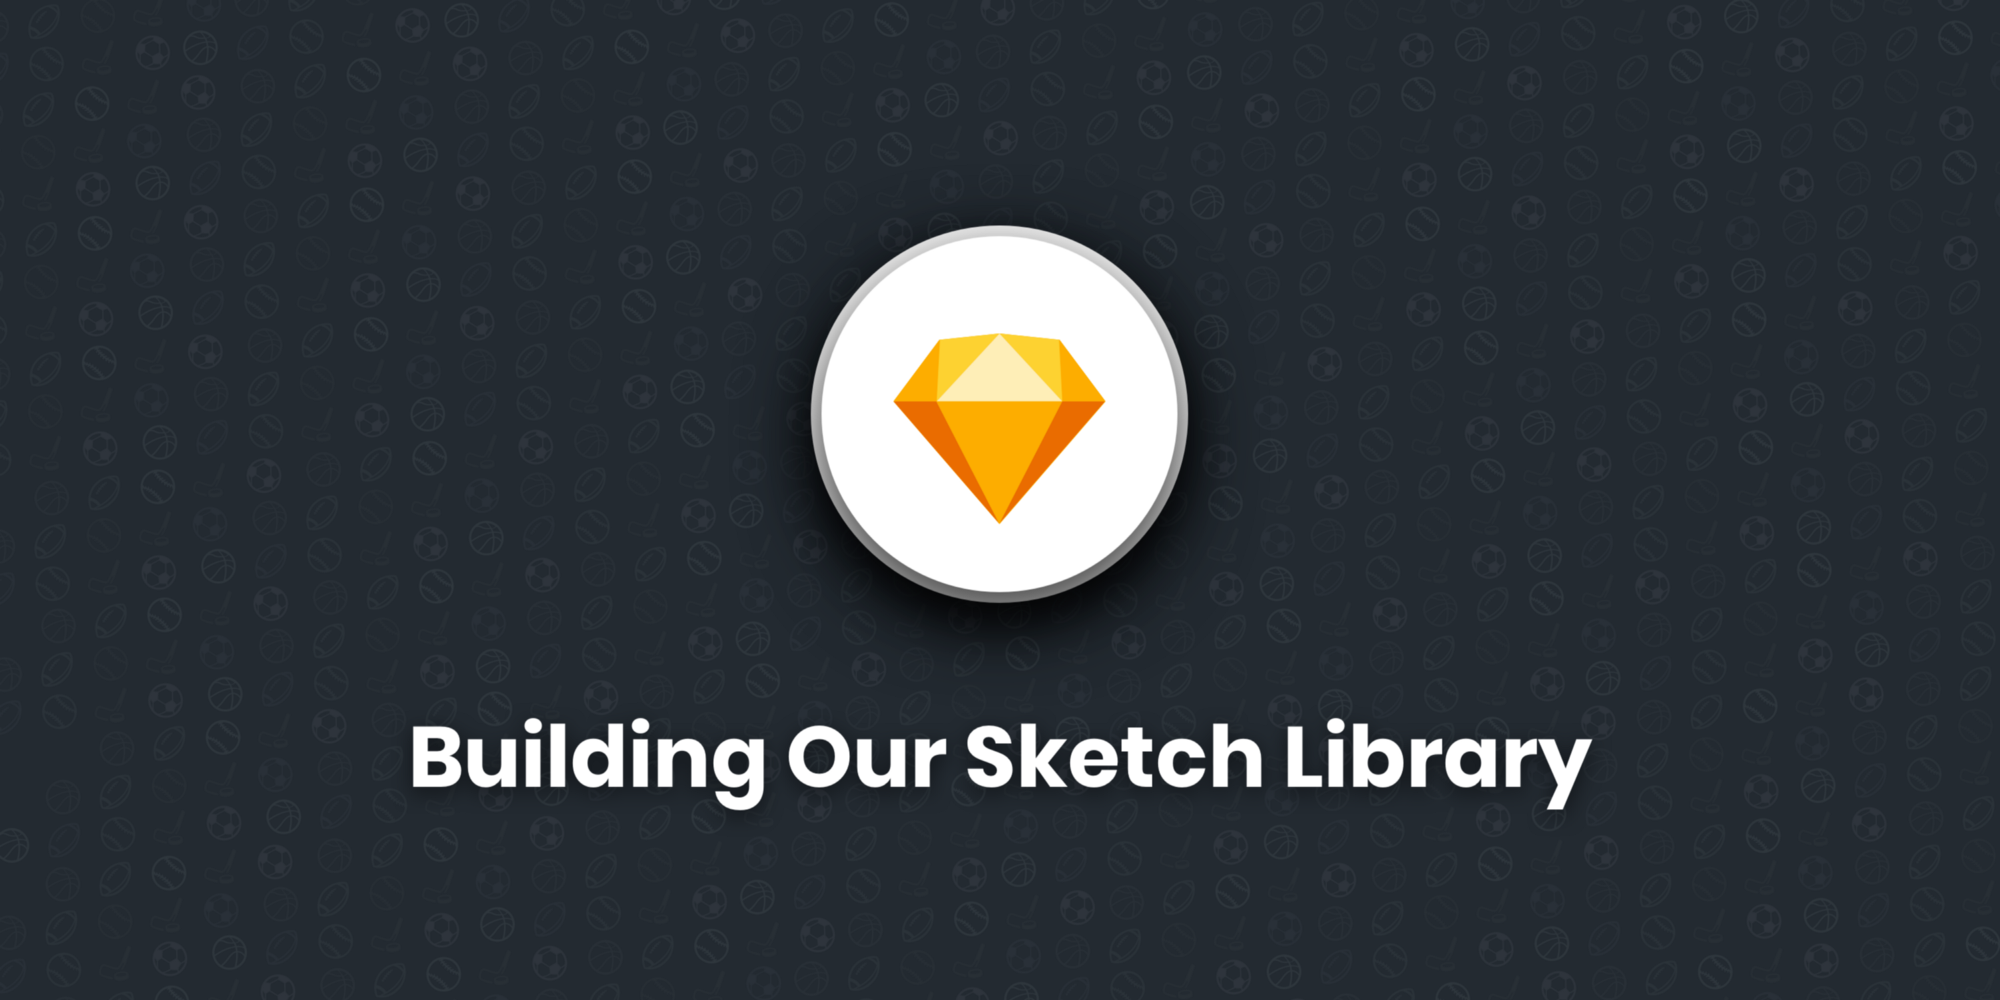 Building our sketch library in the hudl medium version 47 of sketch saw the long awaited introduction of libraries which allows you to sync your symbols globally across all of your sketch files buycottarizona Gallery